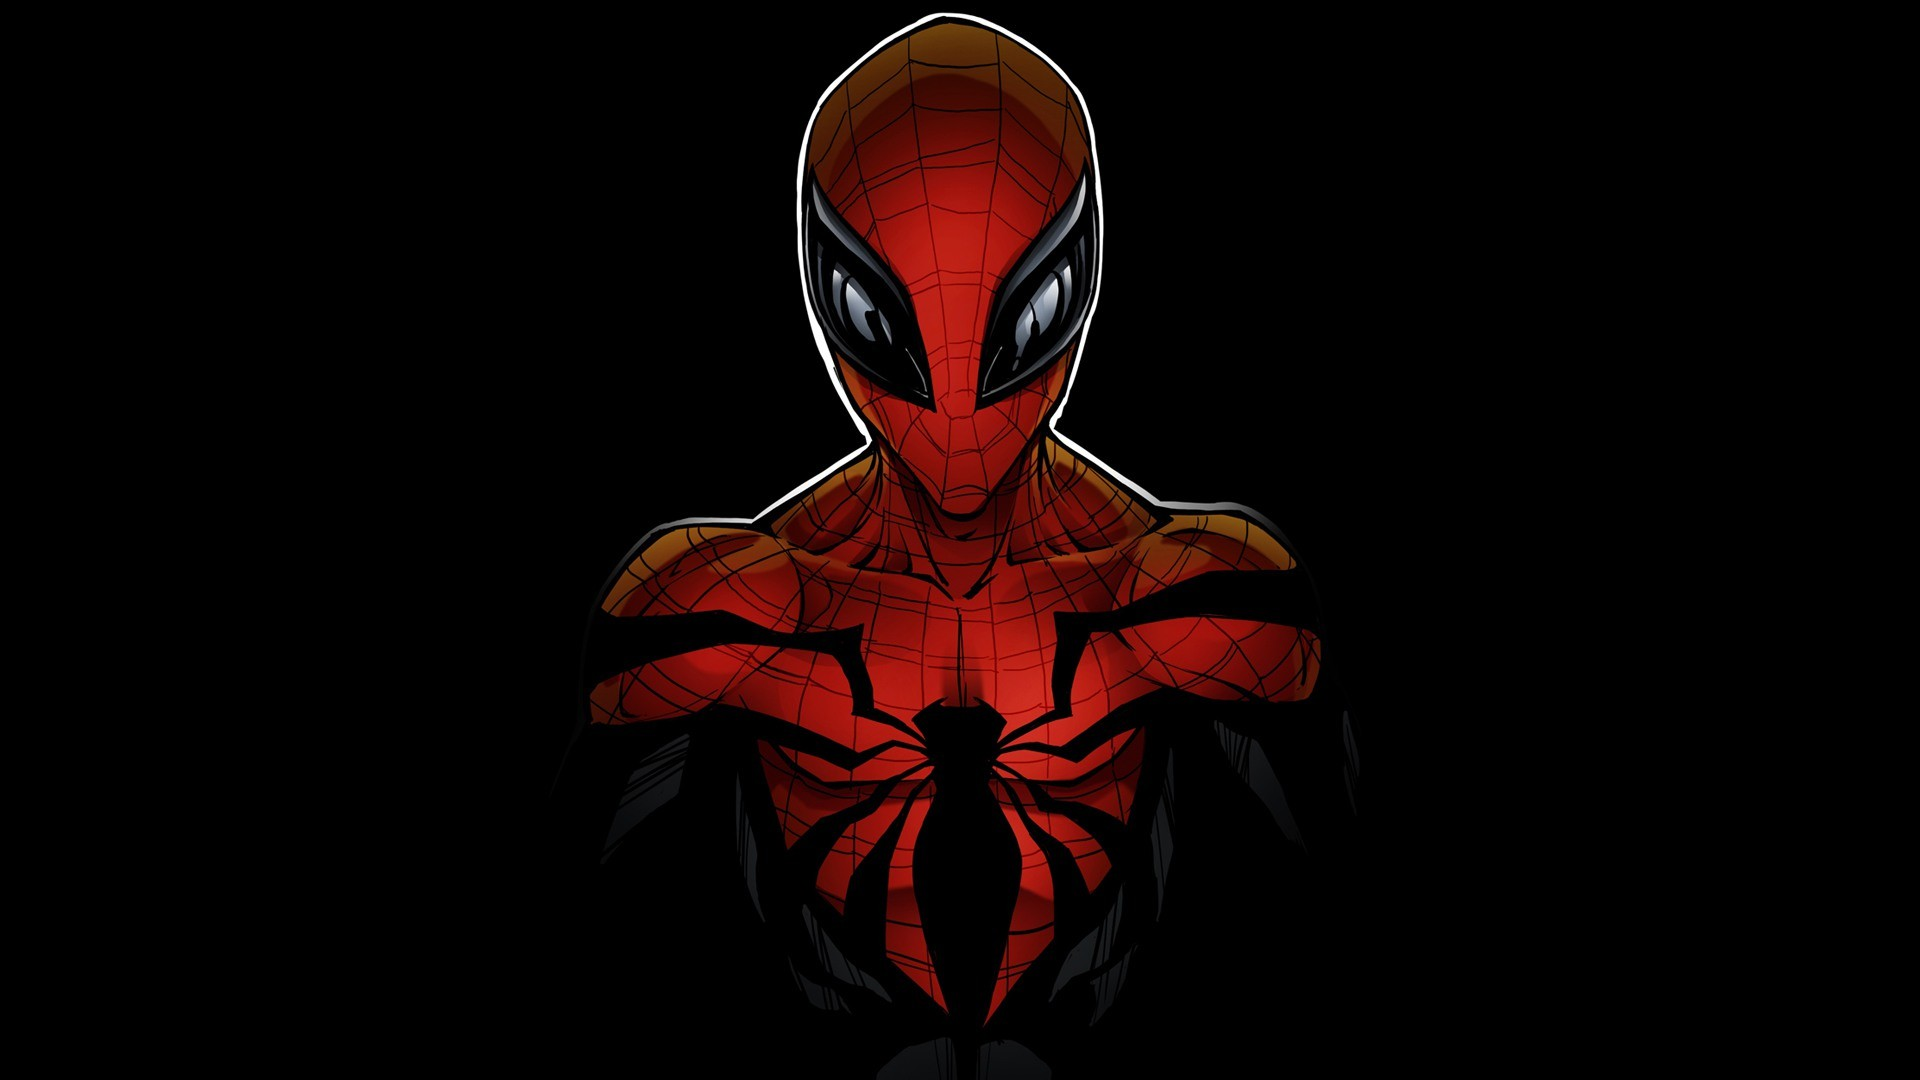 Spiderman IPhone Wallpaper HD (83+ Images